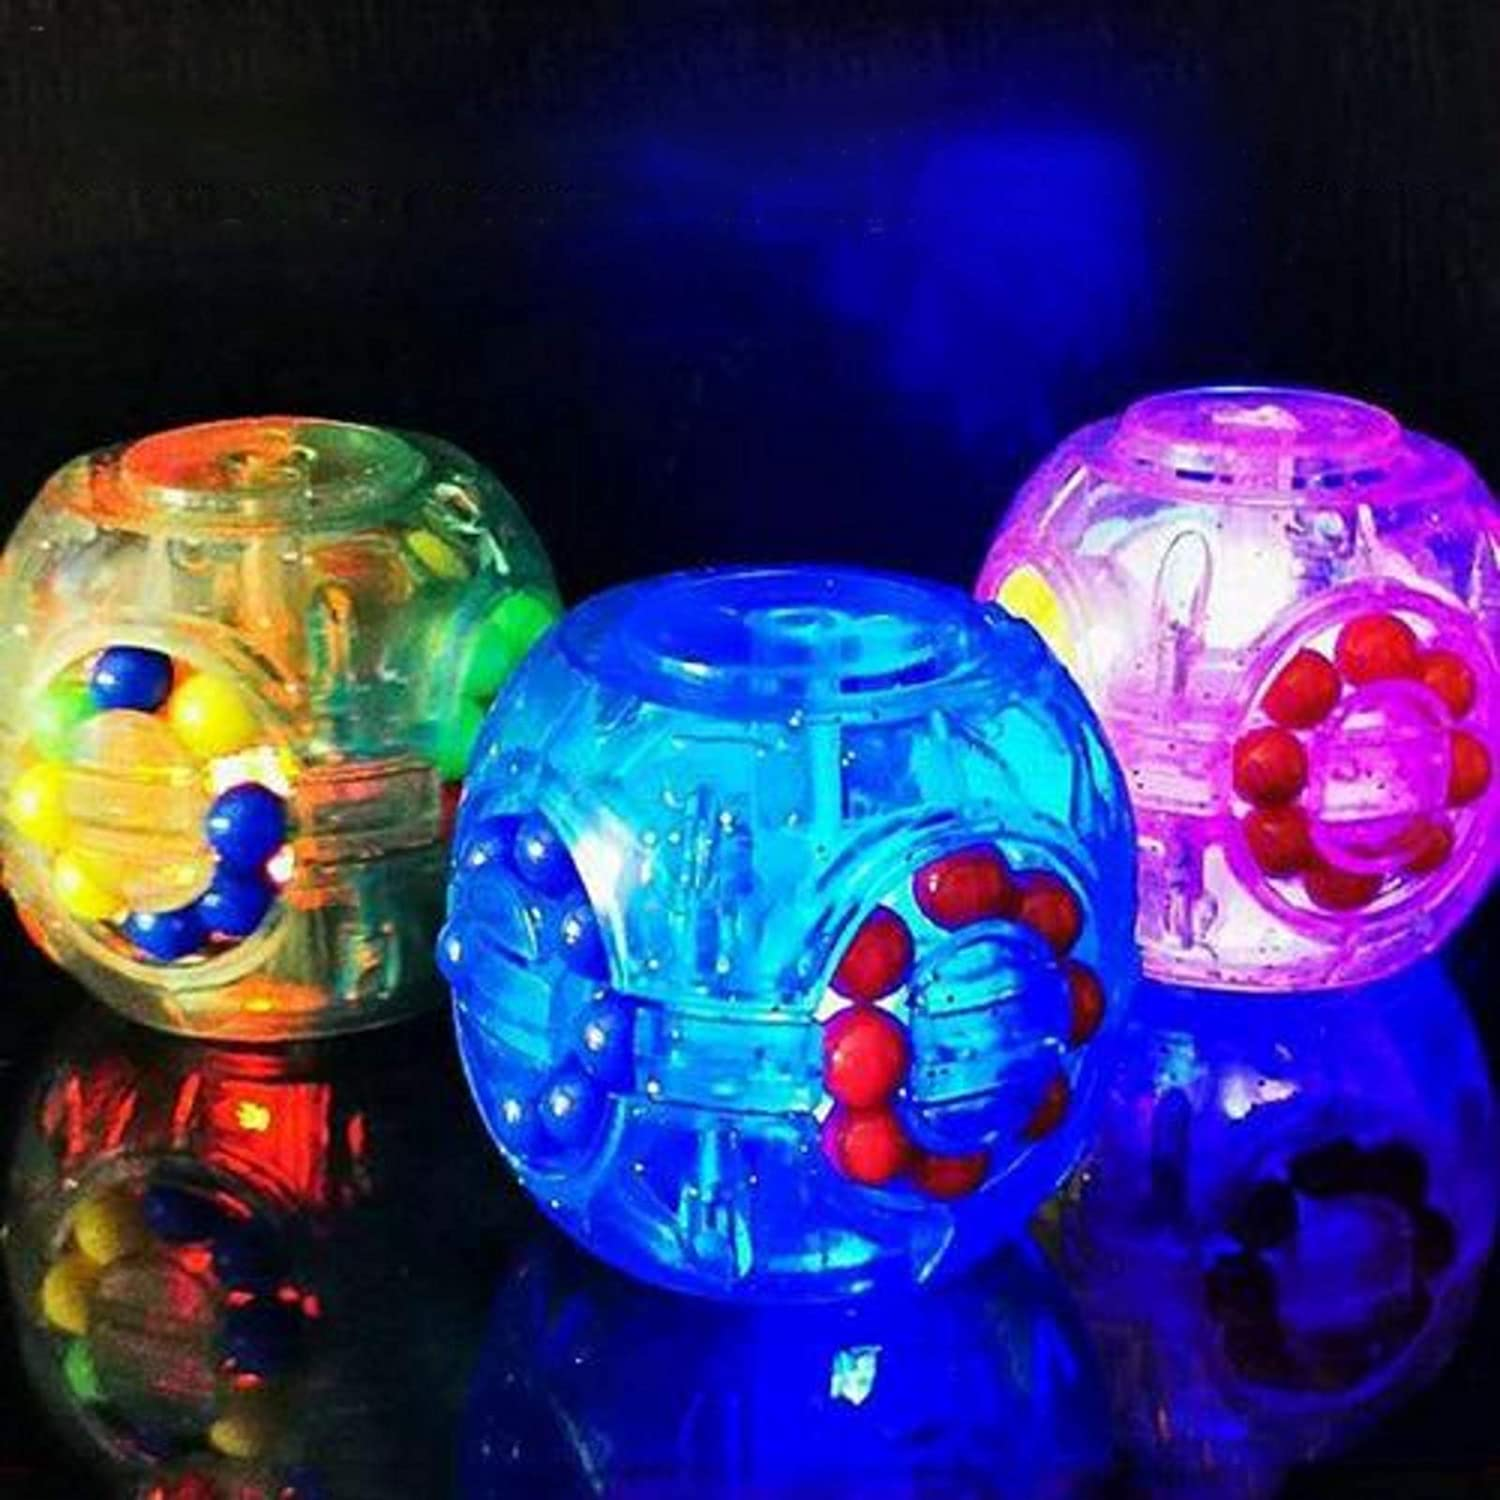 Puzzle Anti-Depression Bead Can Move and Rotate 3PCS Glowing Fidget Cubes Fidget Toy Sensory Toys Stress Relieve Toys Anti-Anxiety Toy for Children and Adults Cube Can Be Rotated